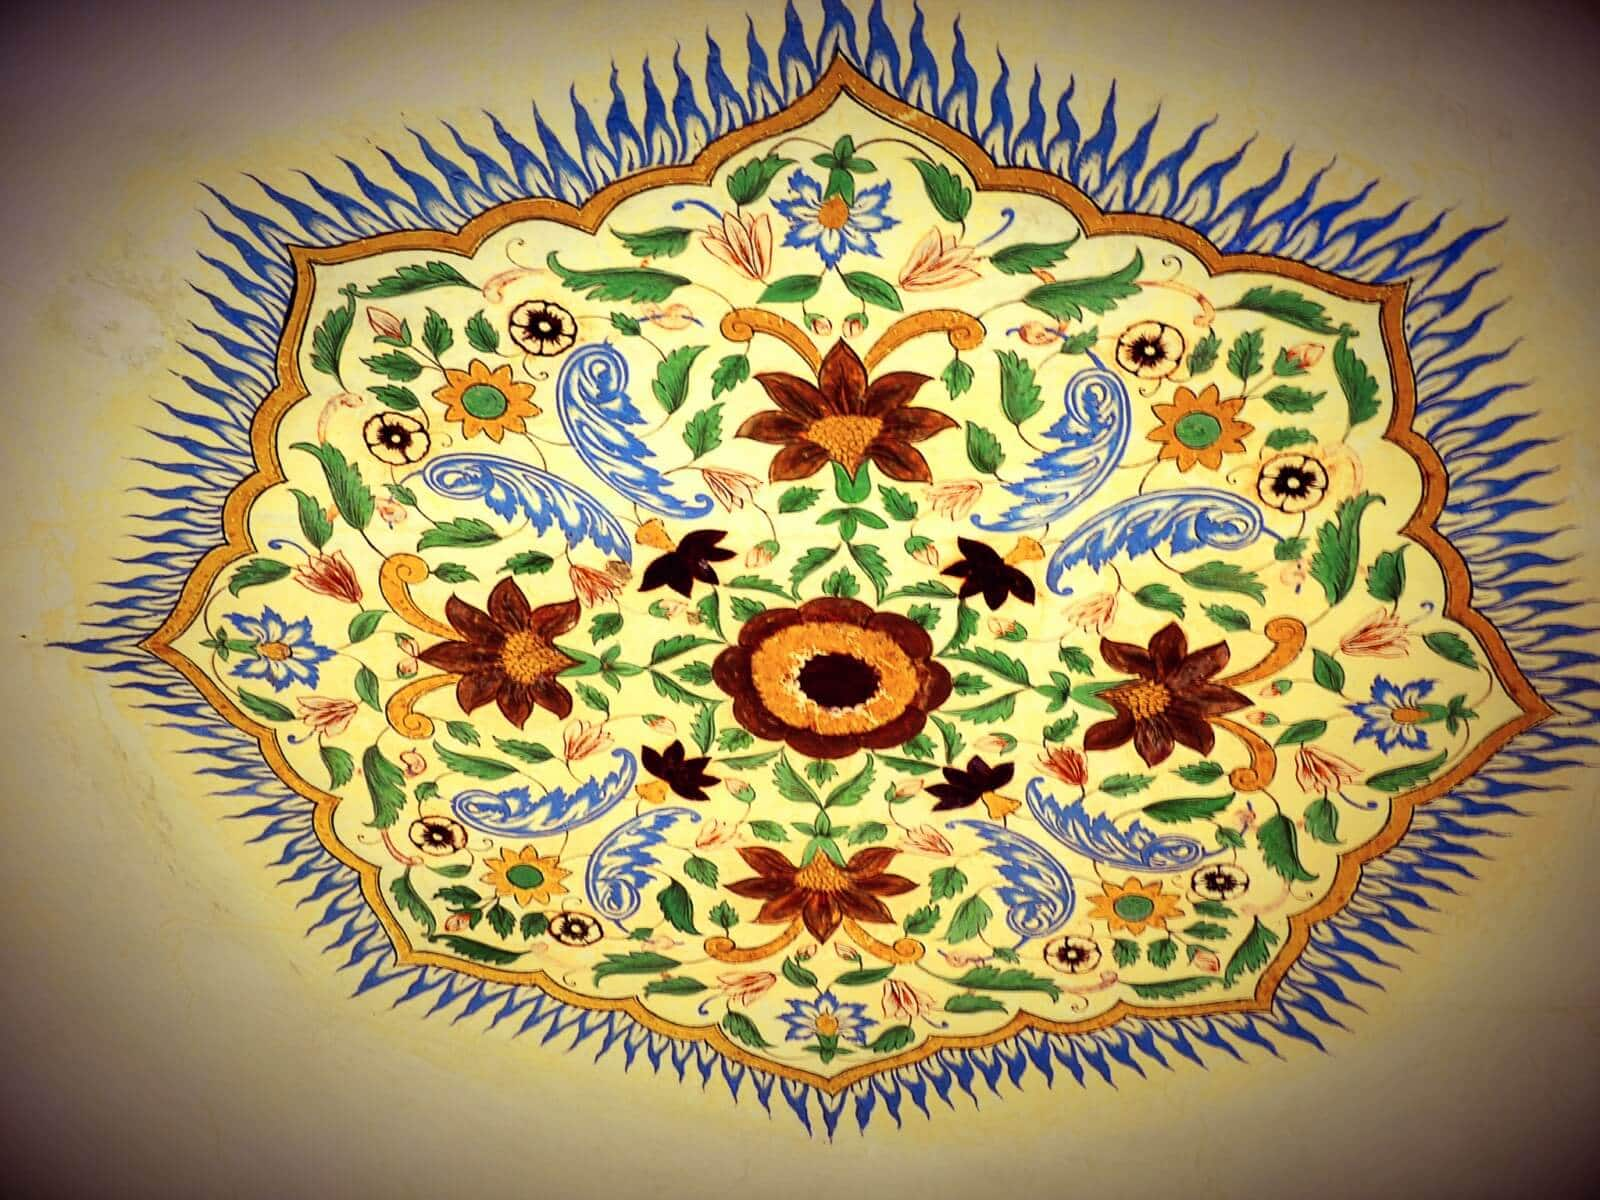 Painting with Gold, Ruby, Emerald etc. at Amer Fort, Jaipur